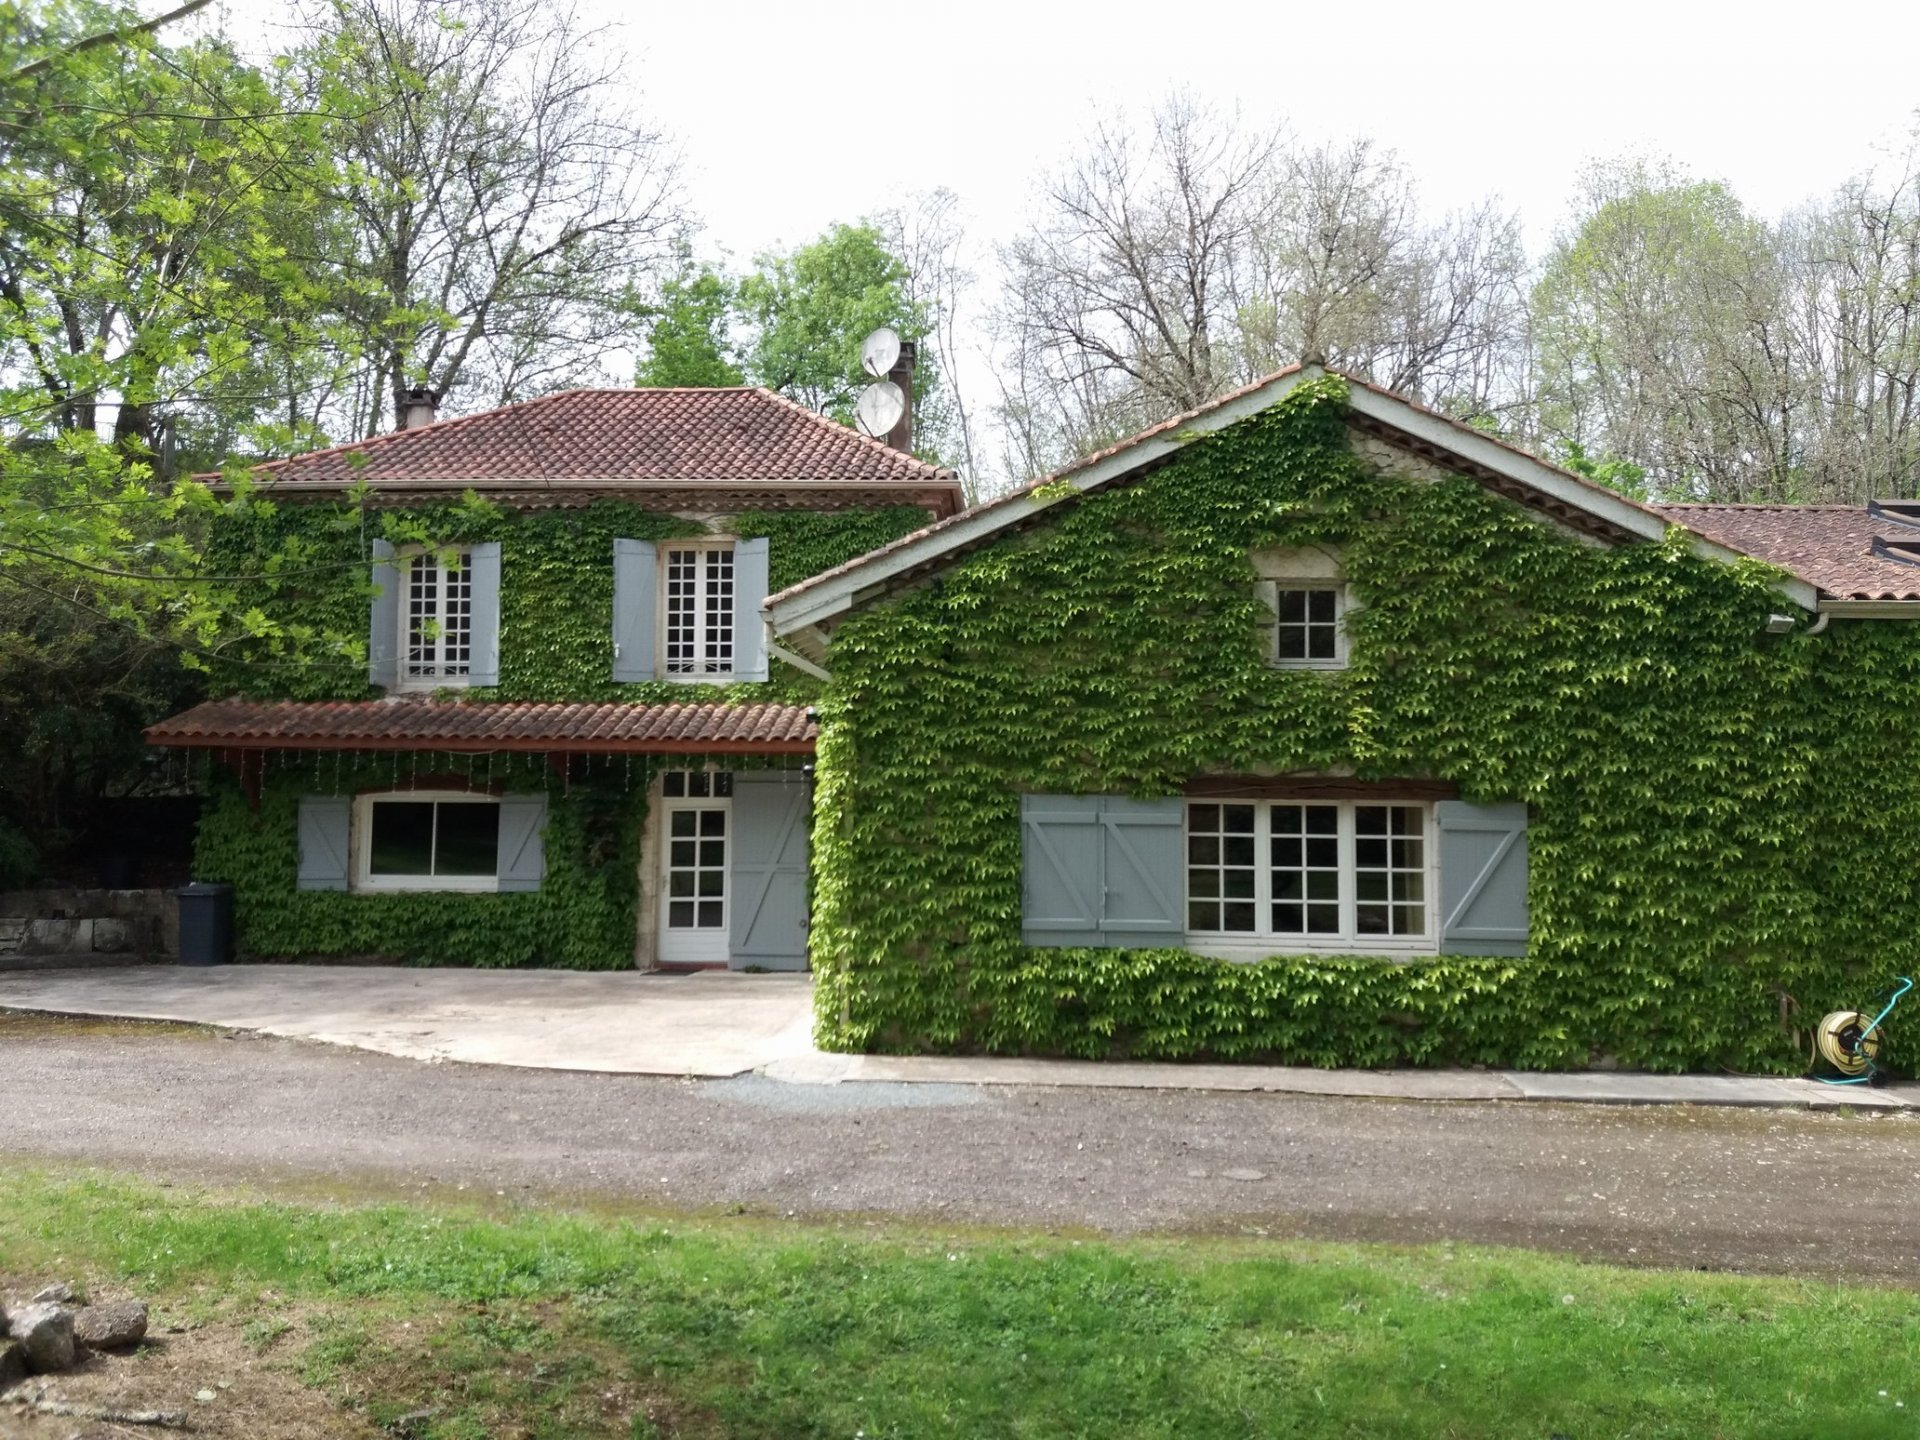 Beautiful stone mill dating from 1750 in its lush setting in the Lot et Garonne countryside.